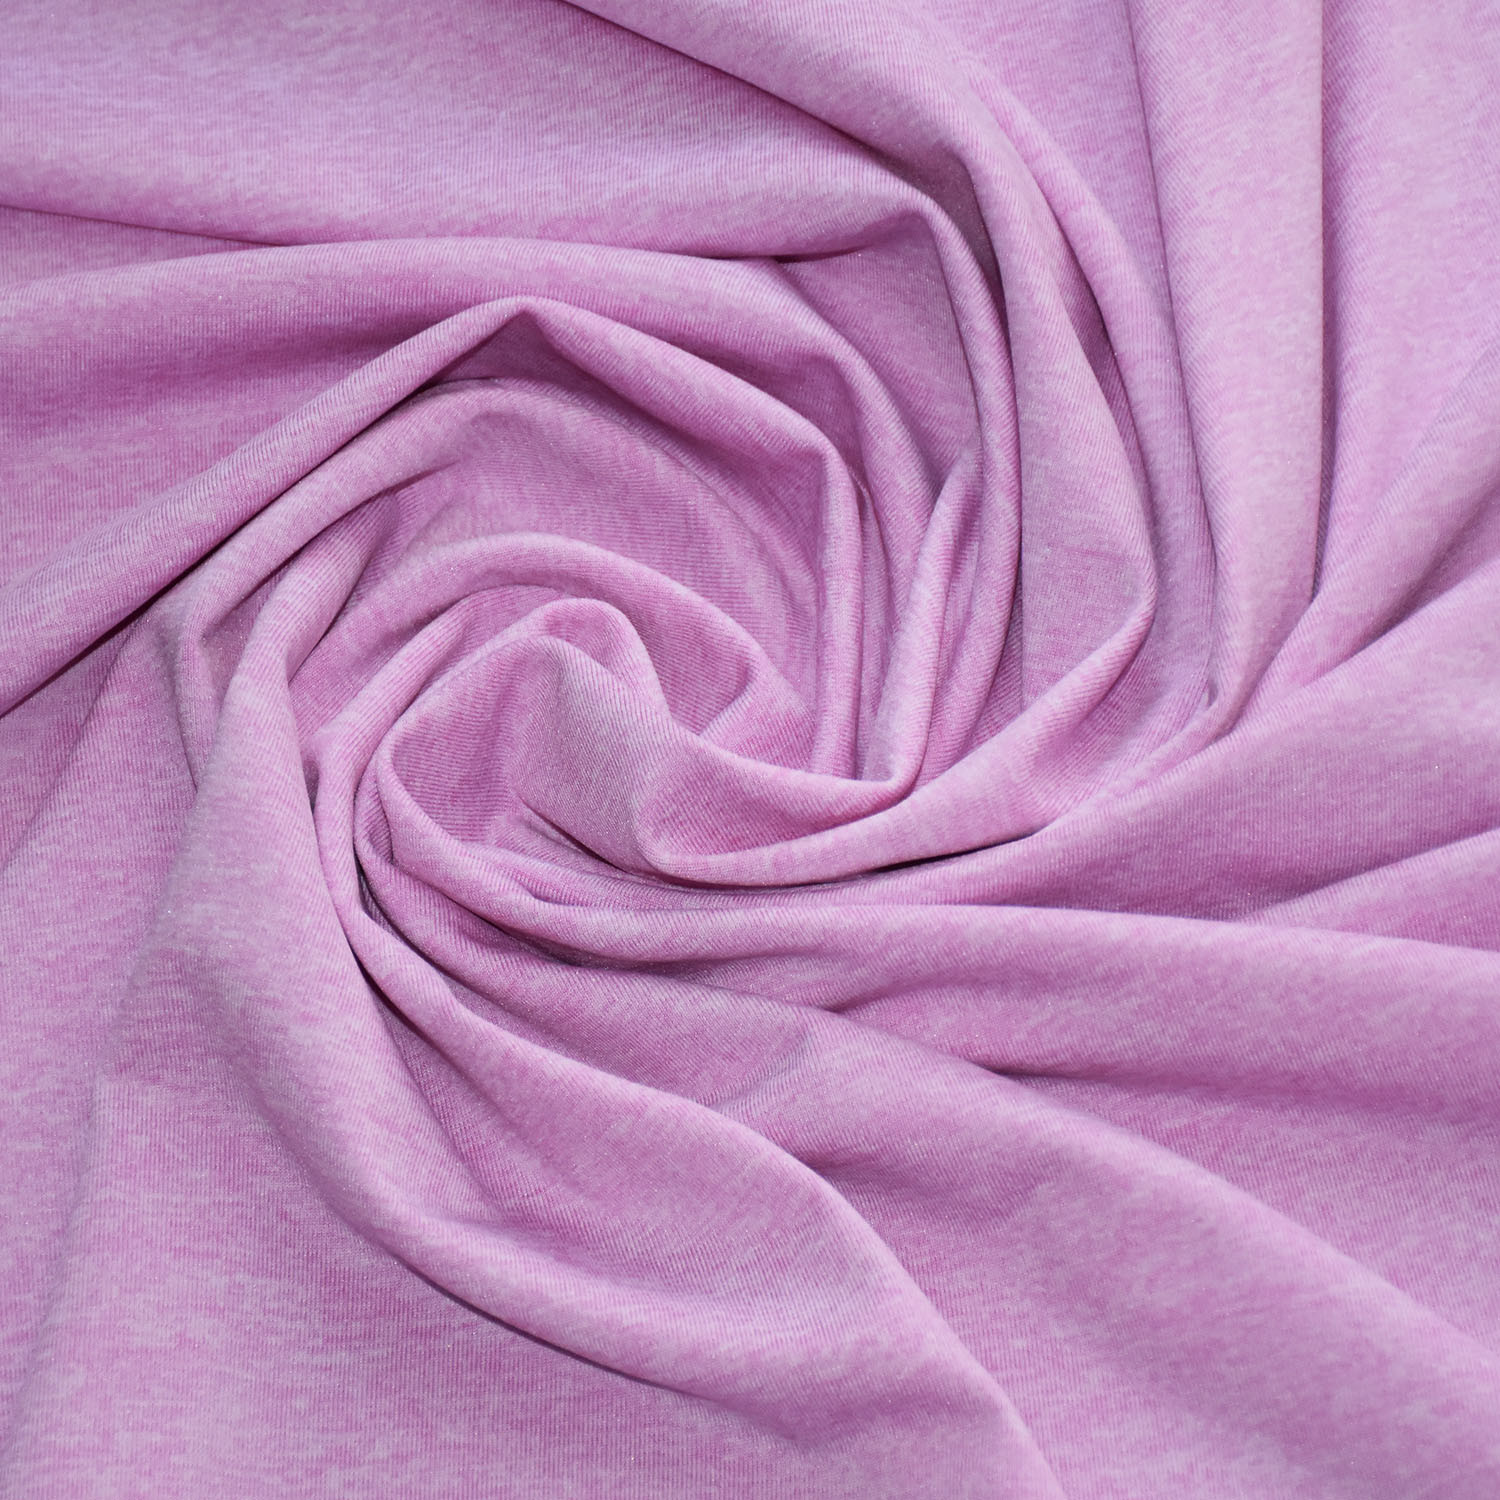 Polyester/Spandex Fabric with Heather Grey for Clothing